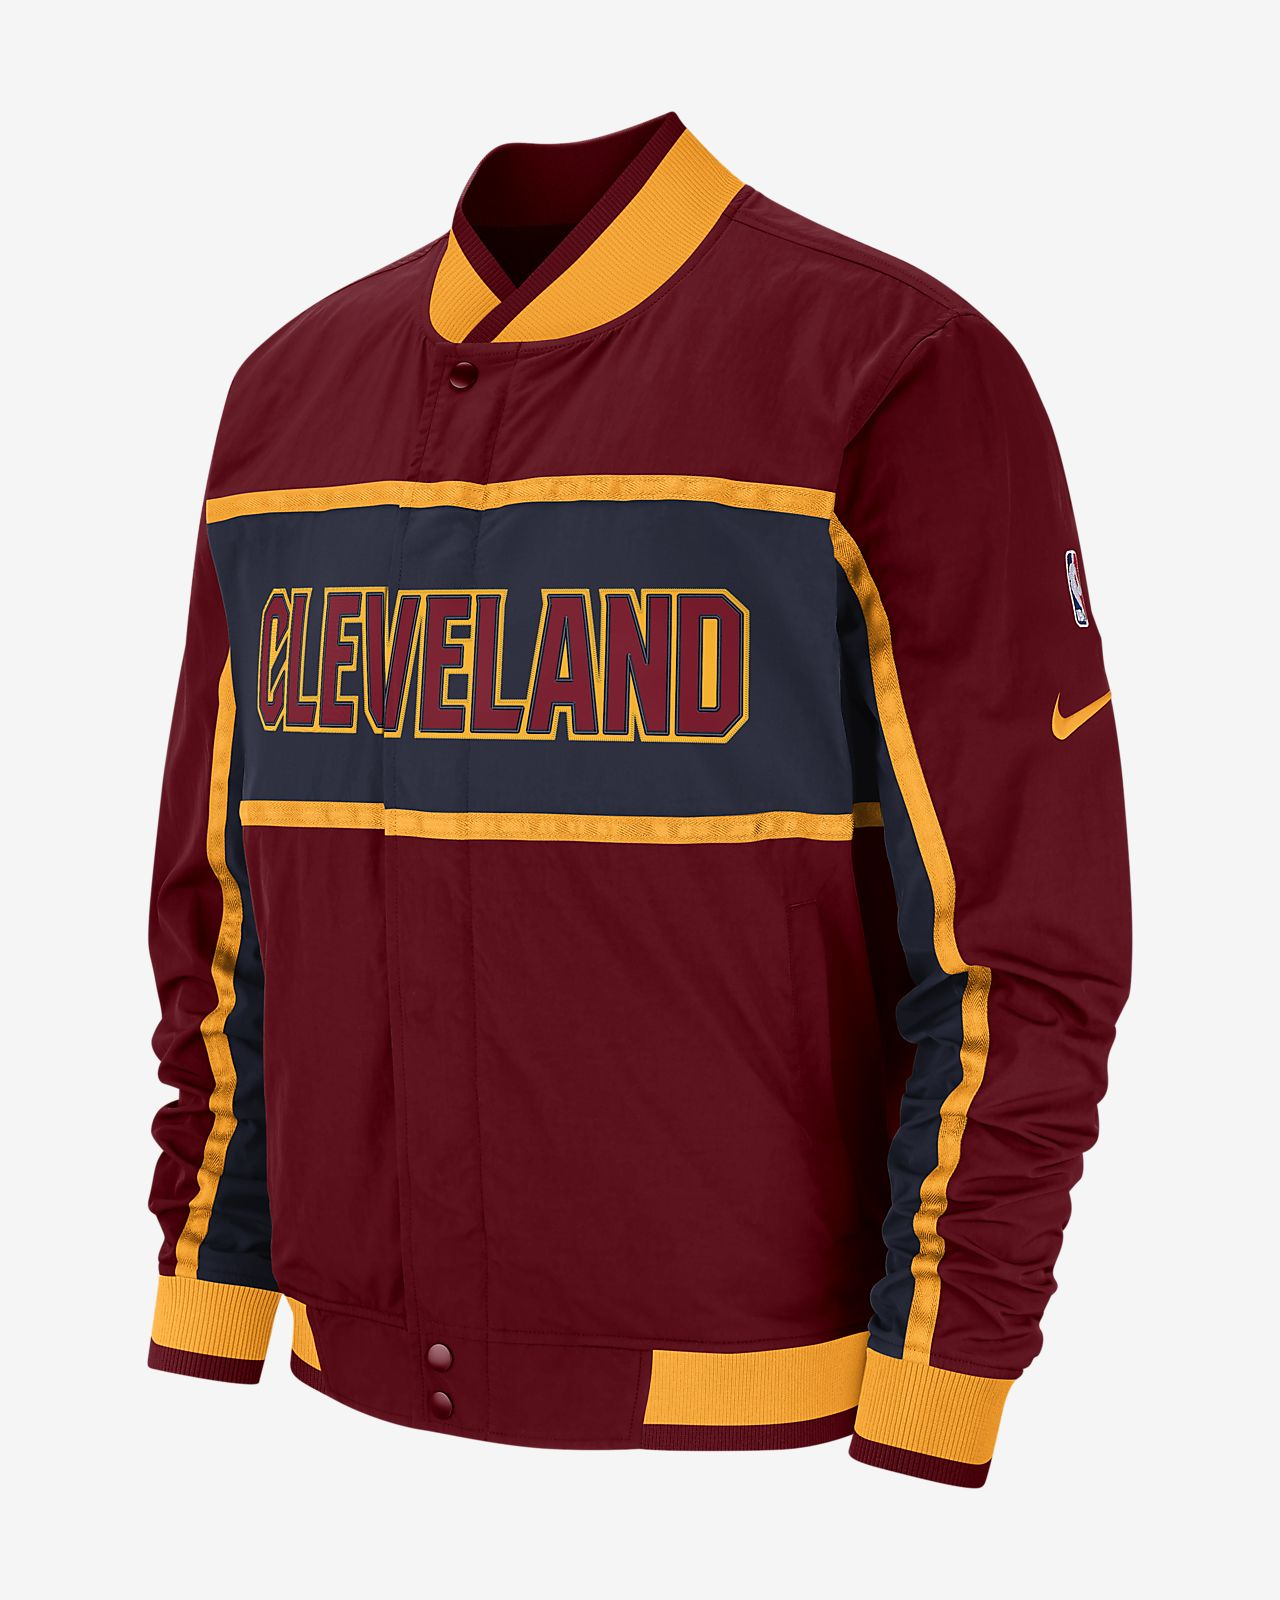 7e2f34622871 Cleveland Cavaliers Nike Courtside Men s NBA Jacket. Nike.com IE